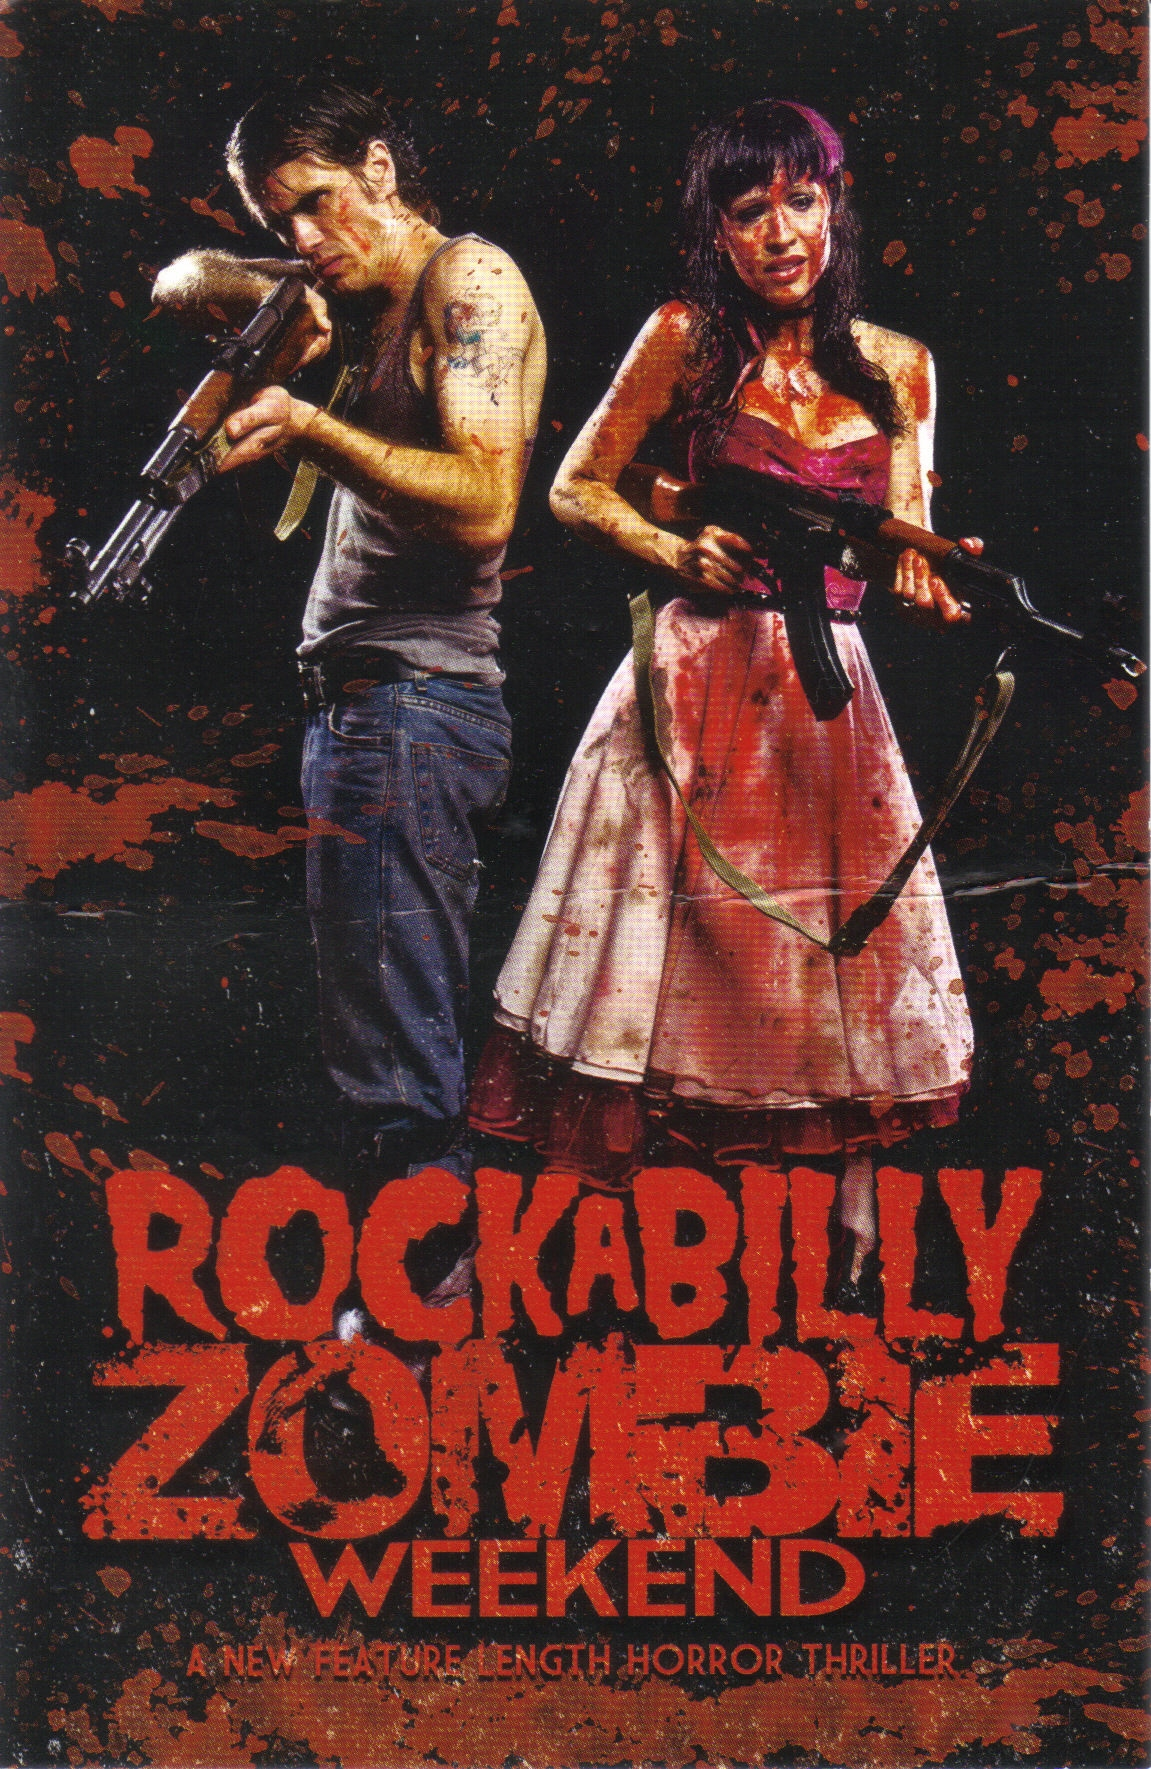 SRC 131: Rockabilly Zombie Weekend (2013)